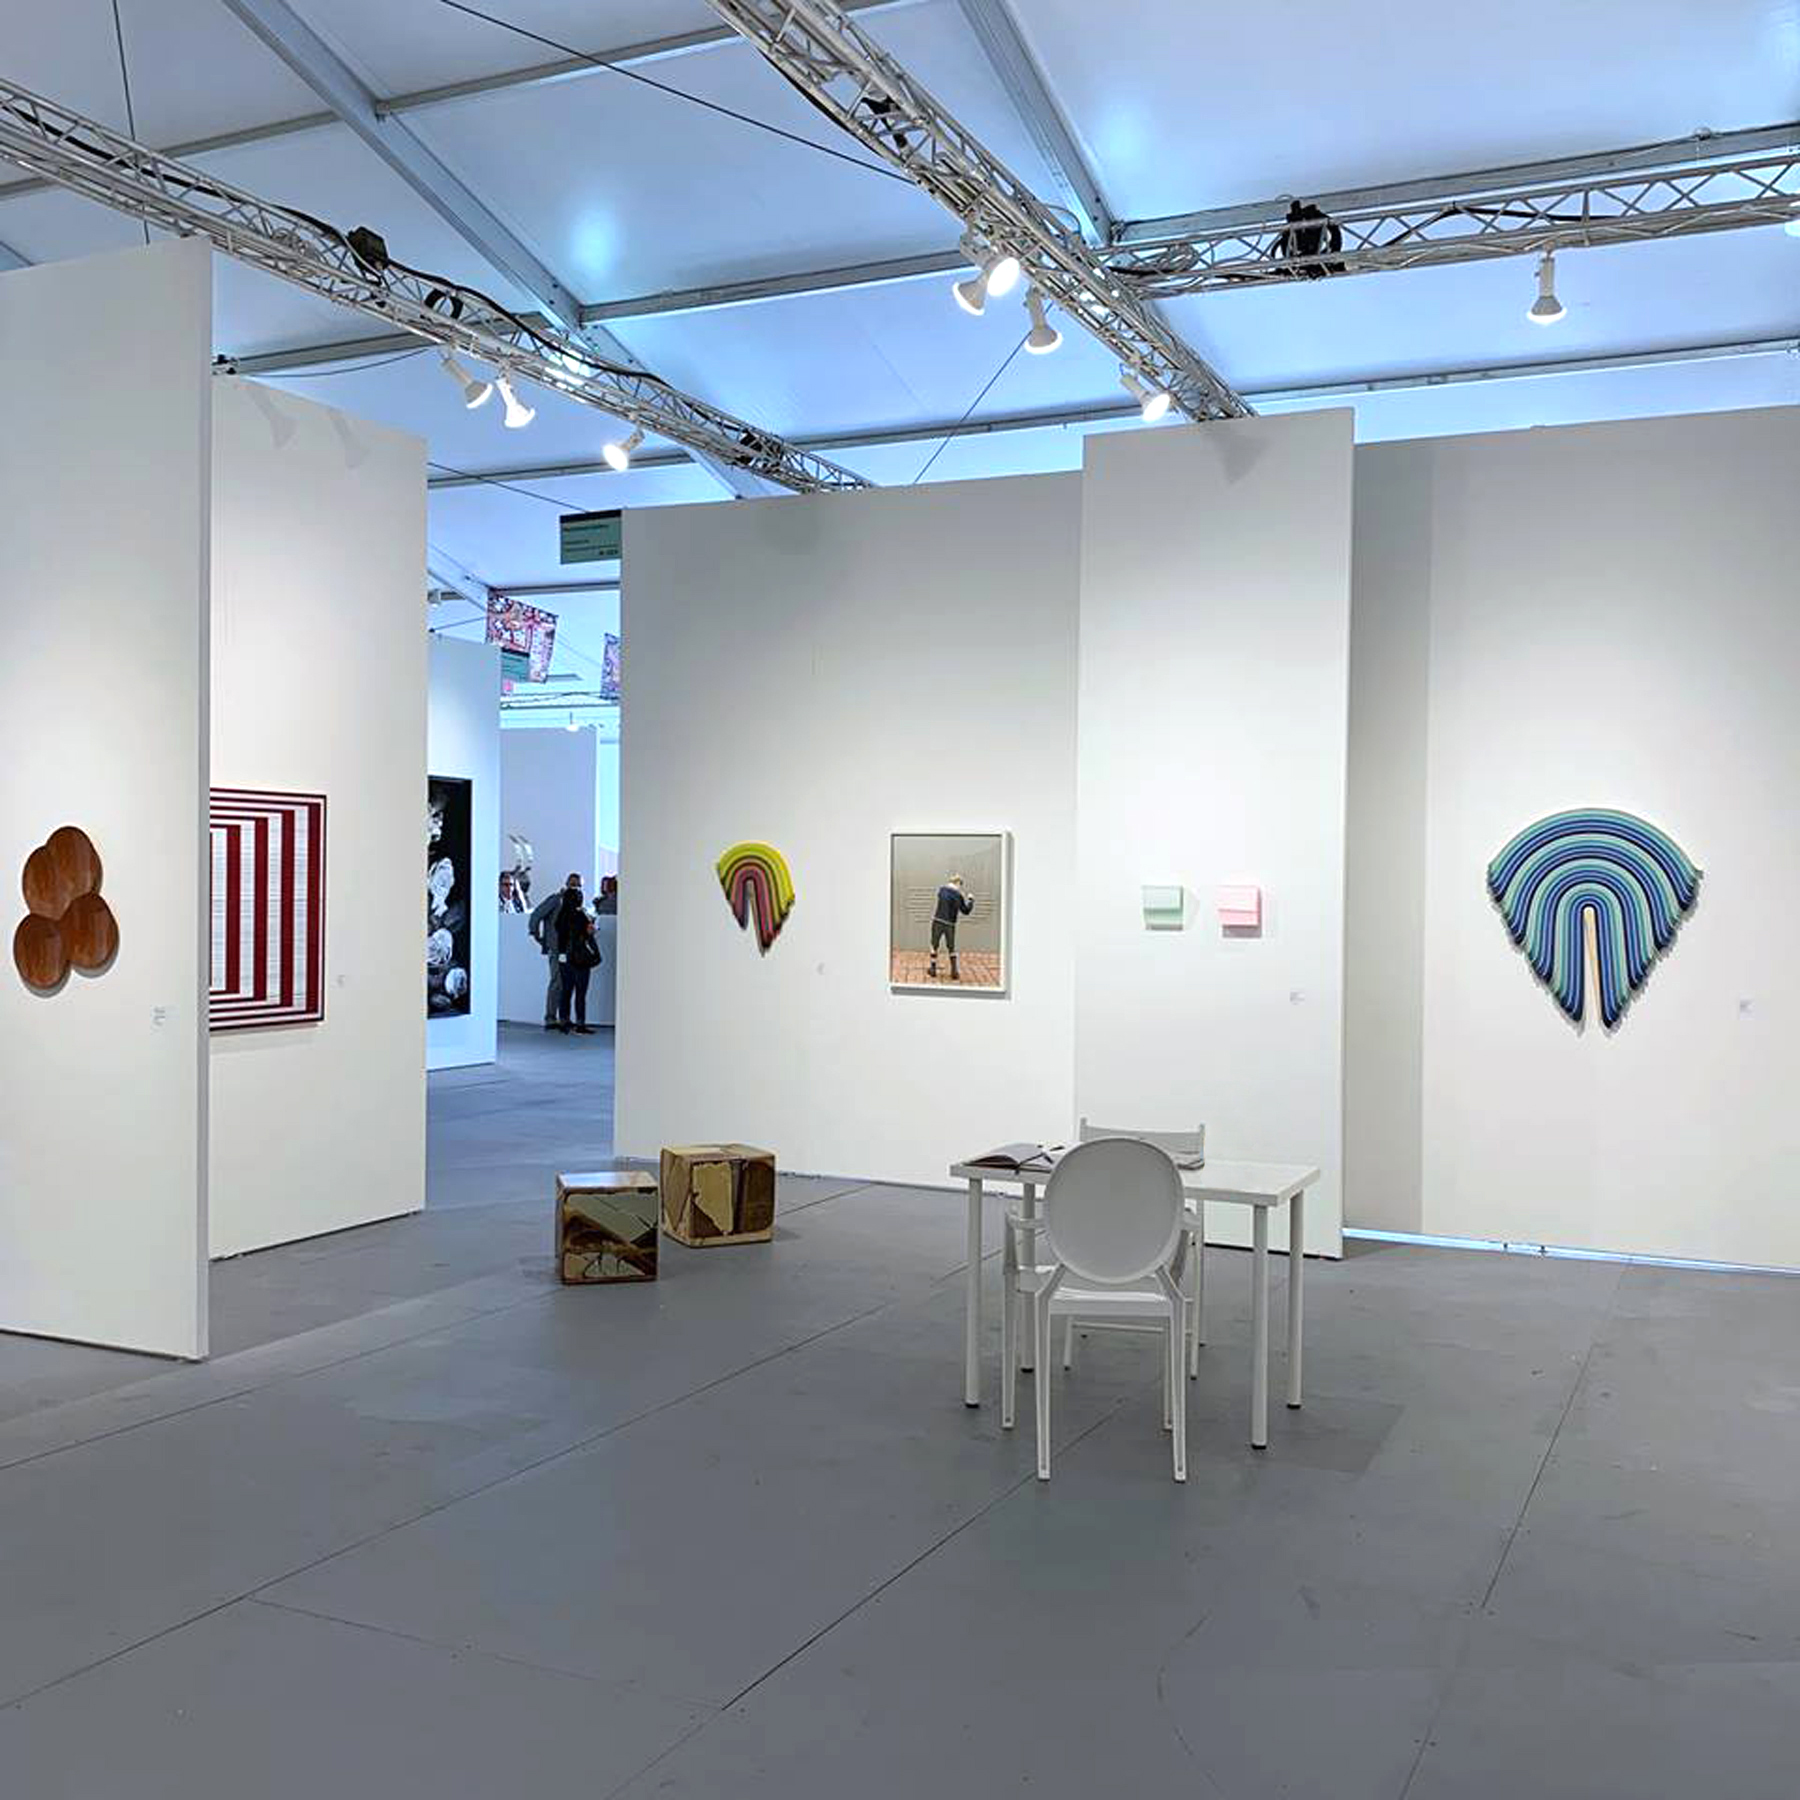 pulse 18 installation view 3.jpg